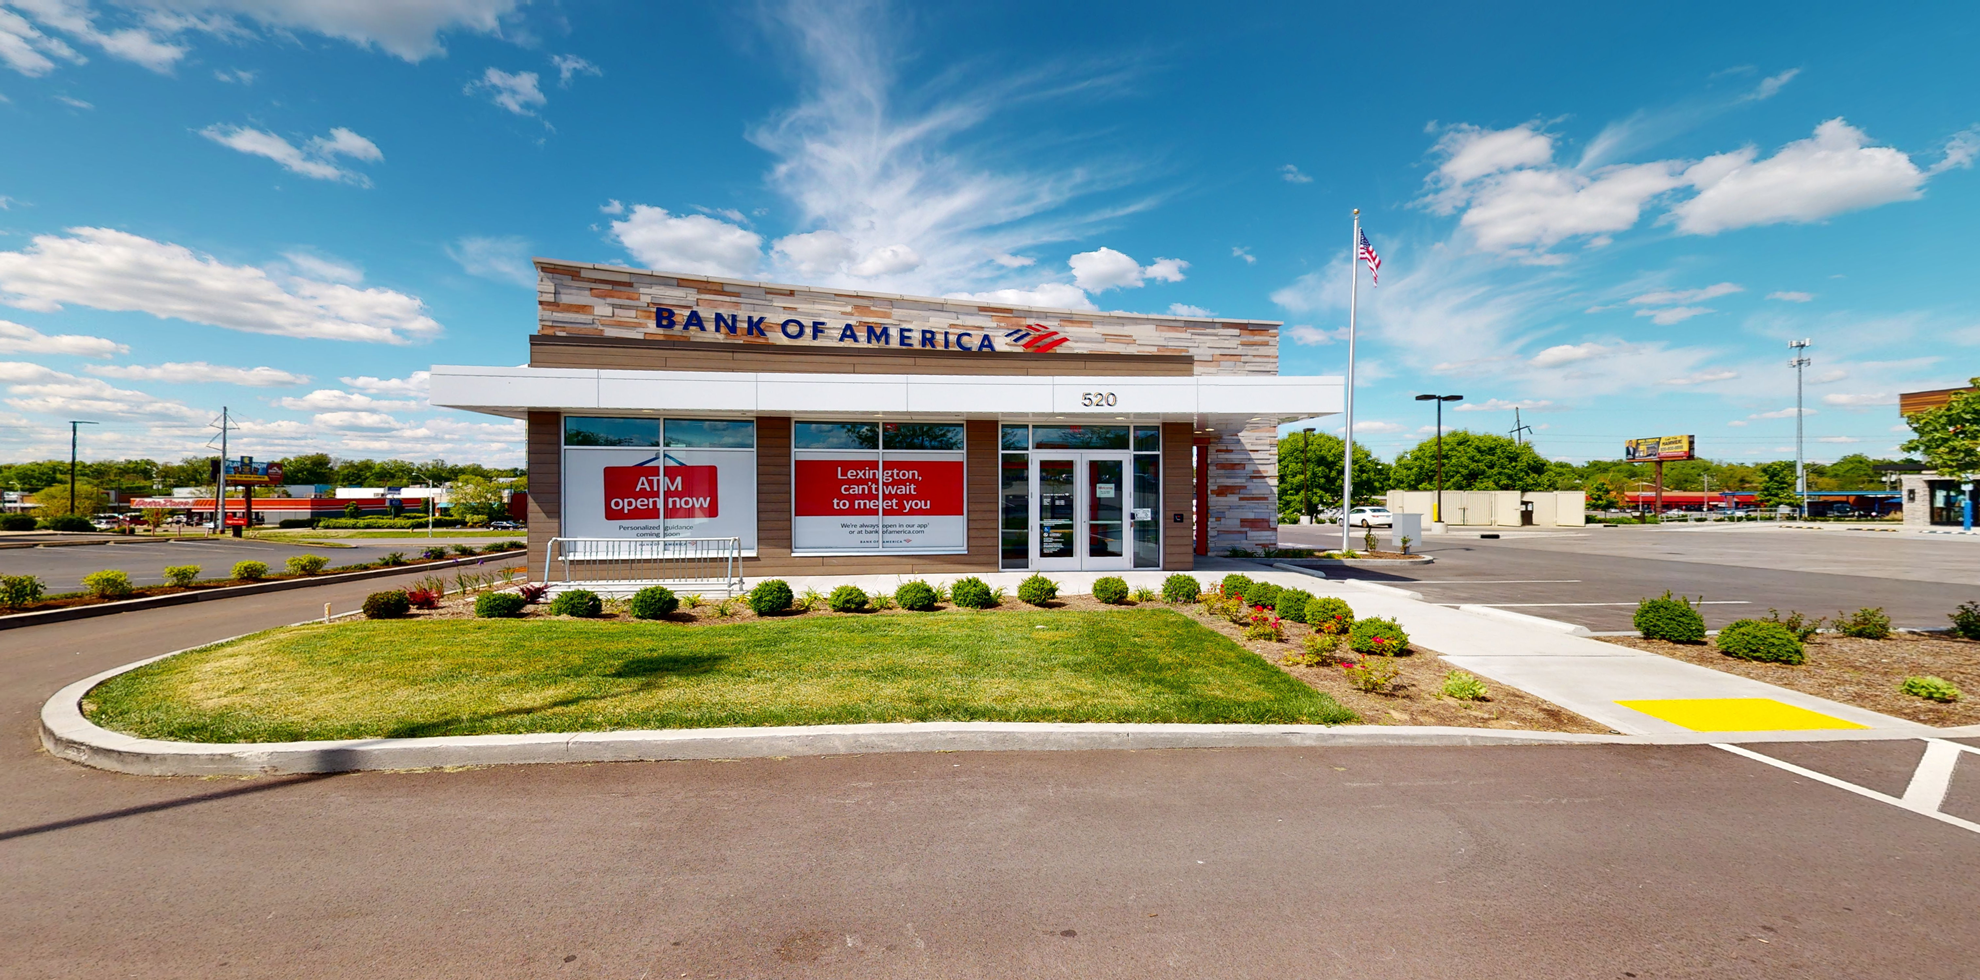 Bank of America financial center with drive-thru ATM   520 W New Circle Rd, Lexington, KY 40511